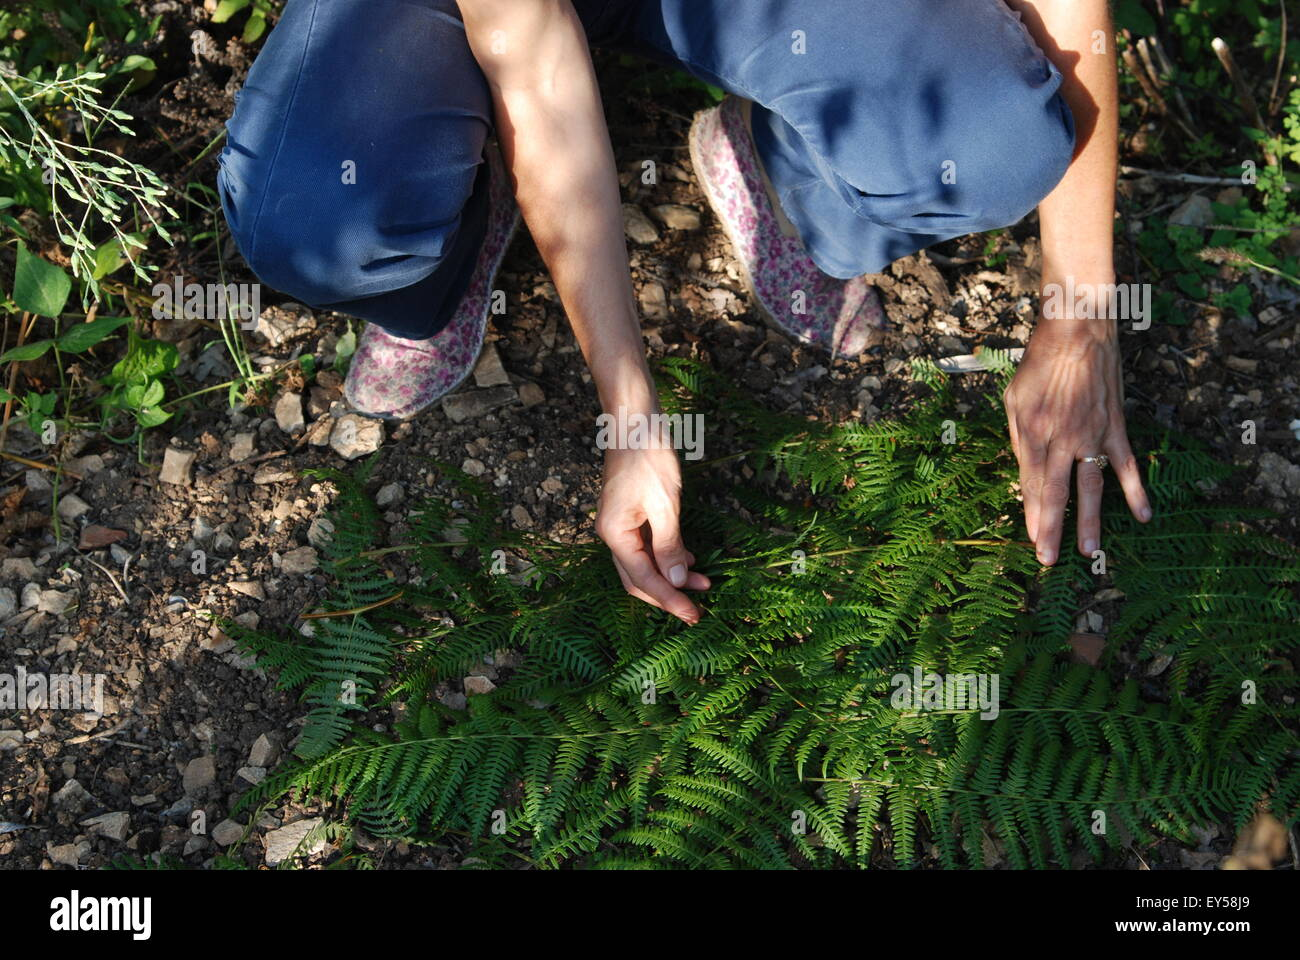 Fern leaves mulch on sowings in a garden Stock Photo